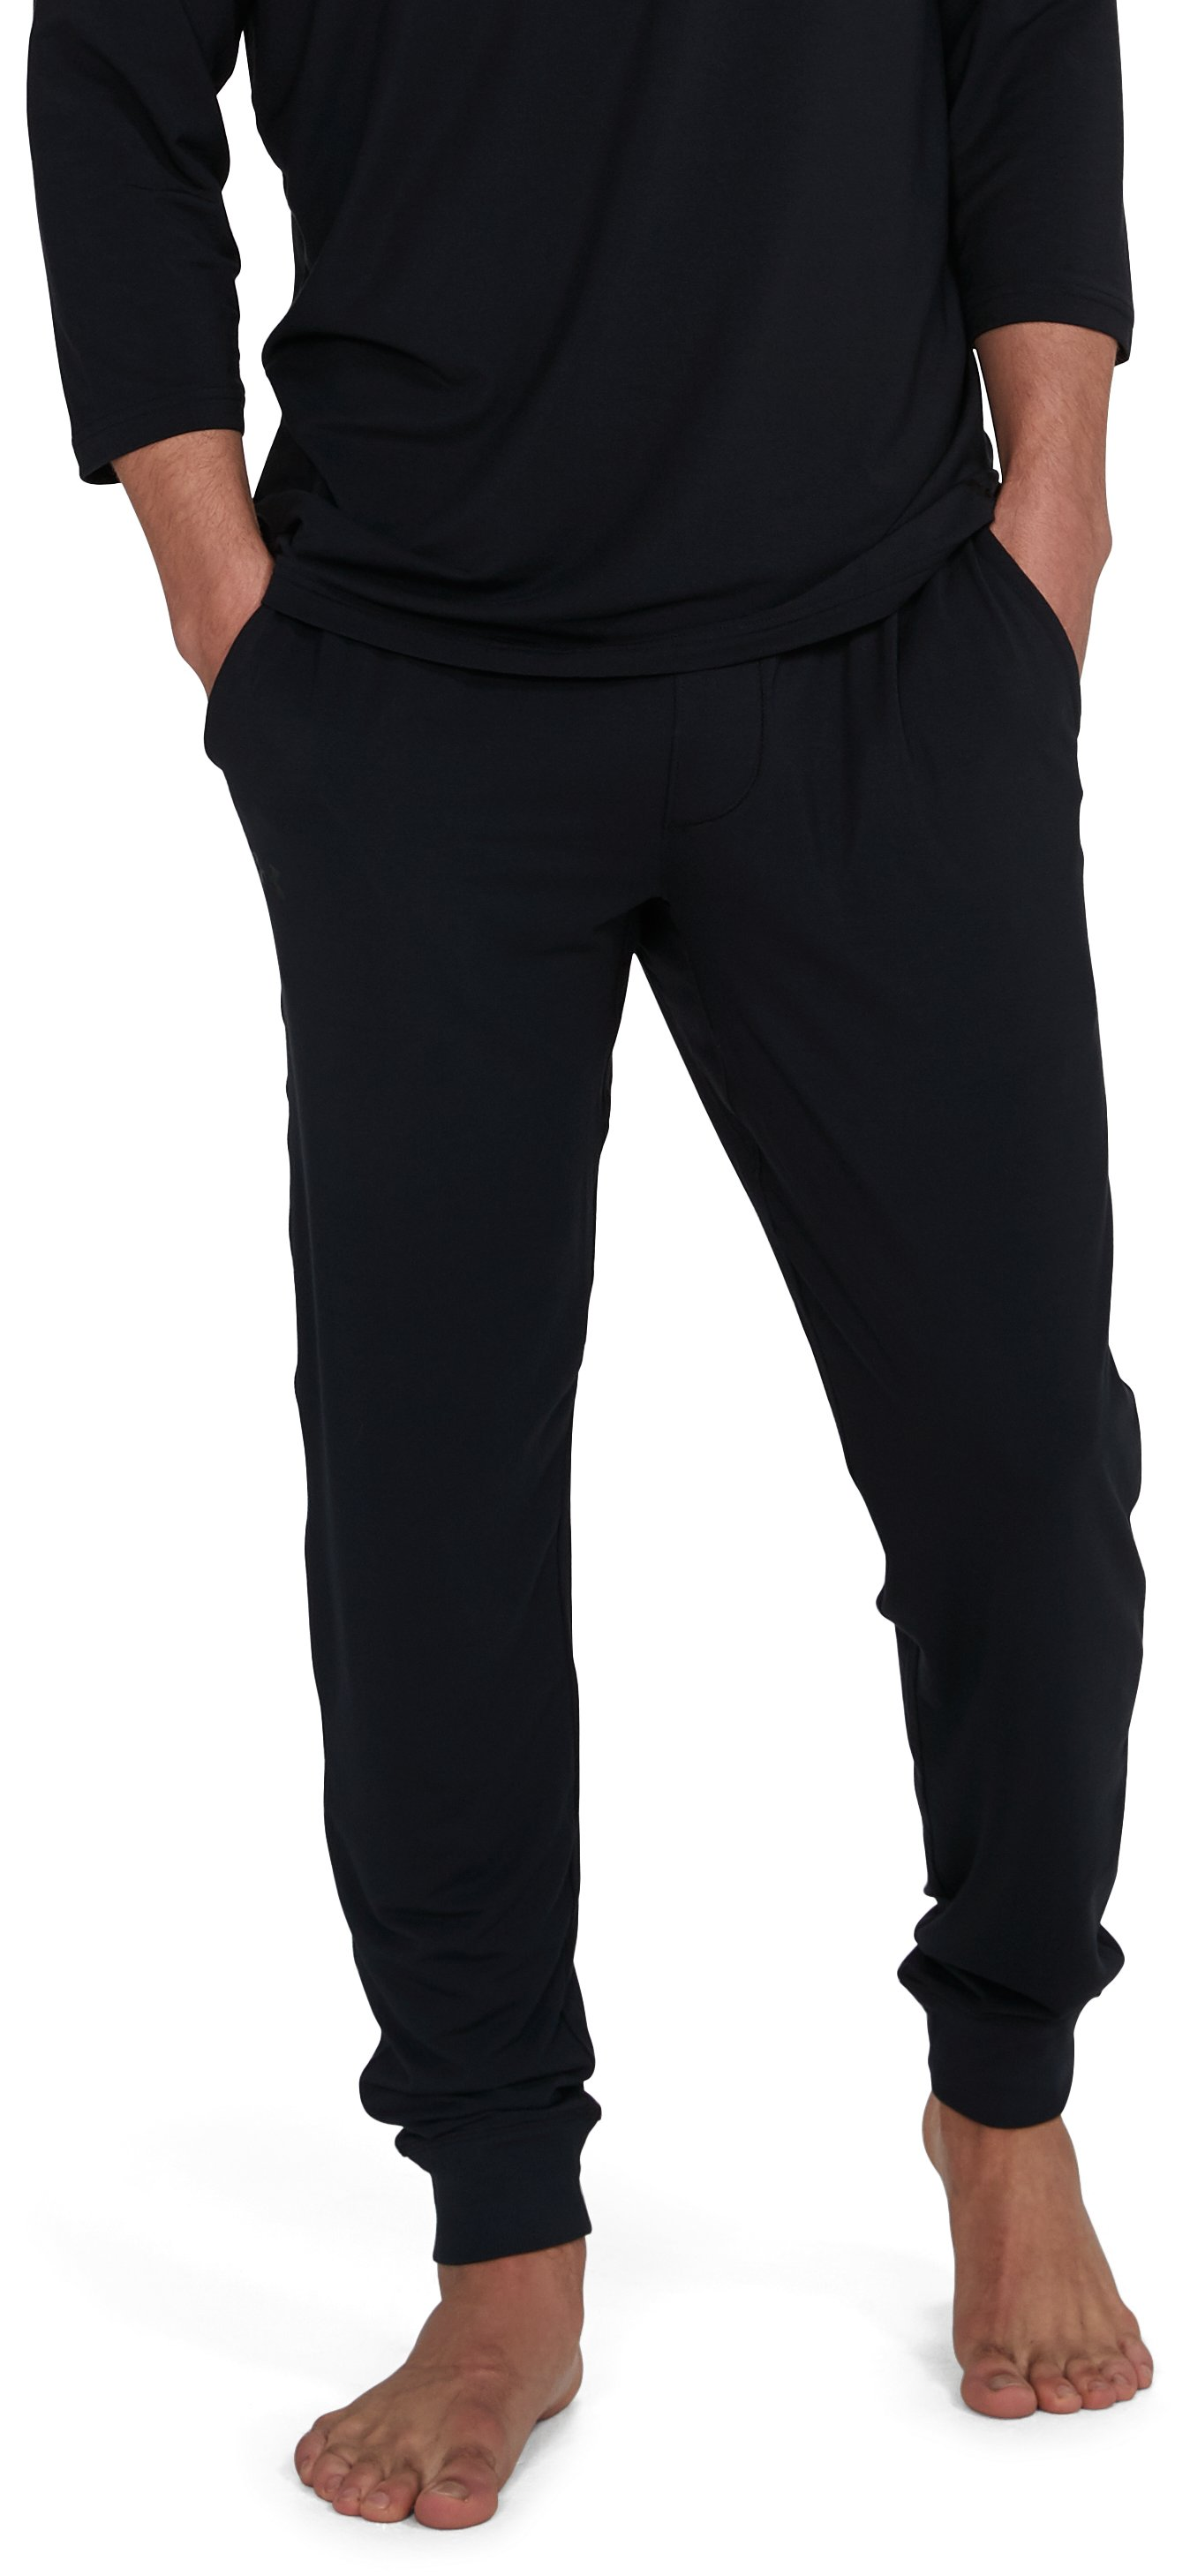 Men's Athlete Recovery Ultra Comfort Sleepwear Pants, Black , undefined